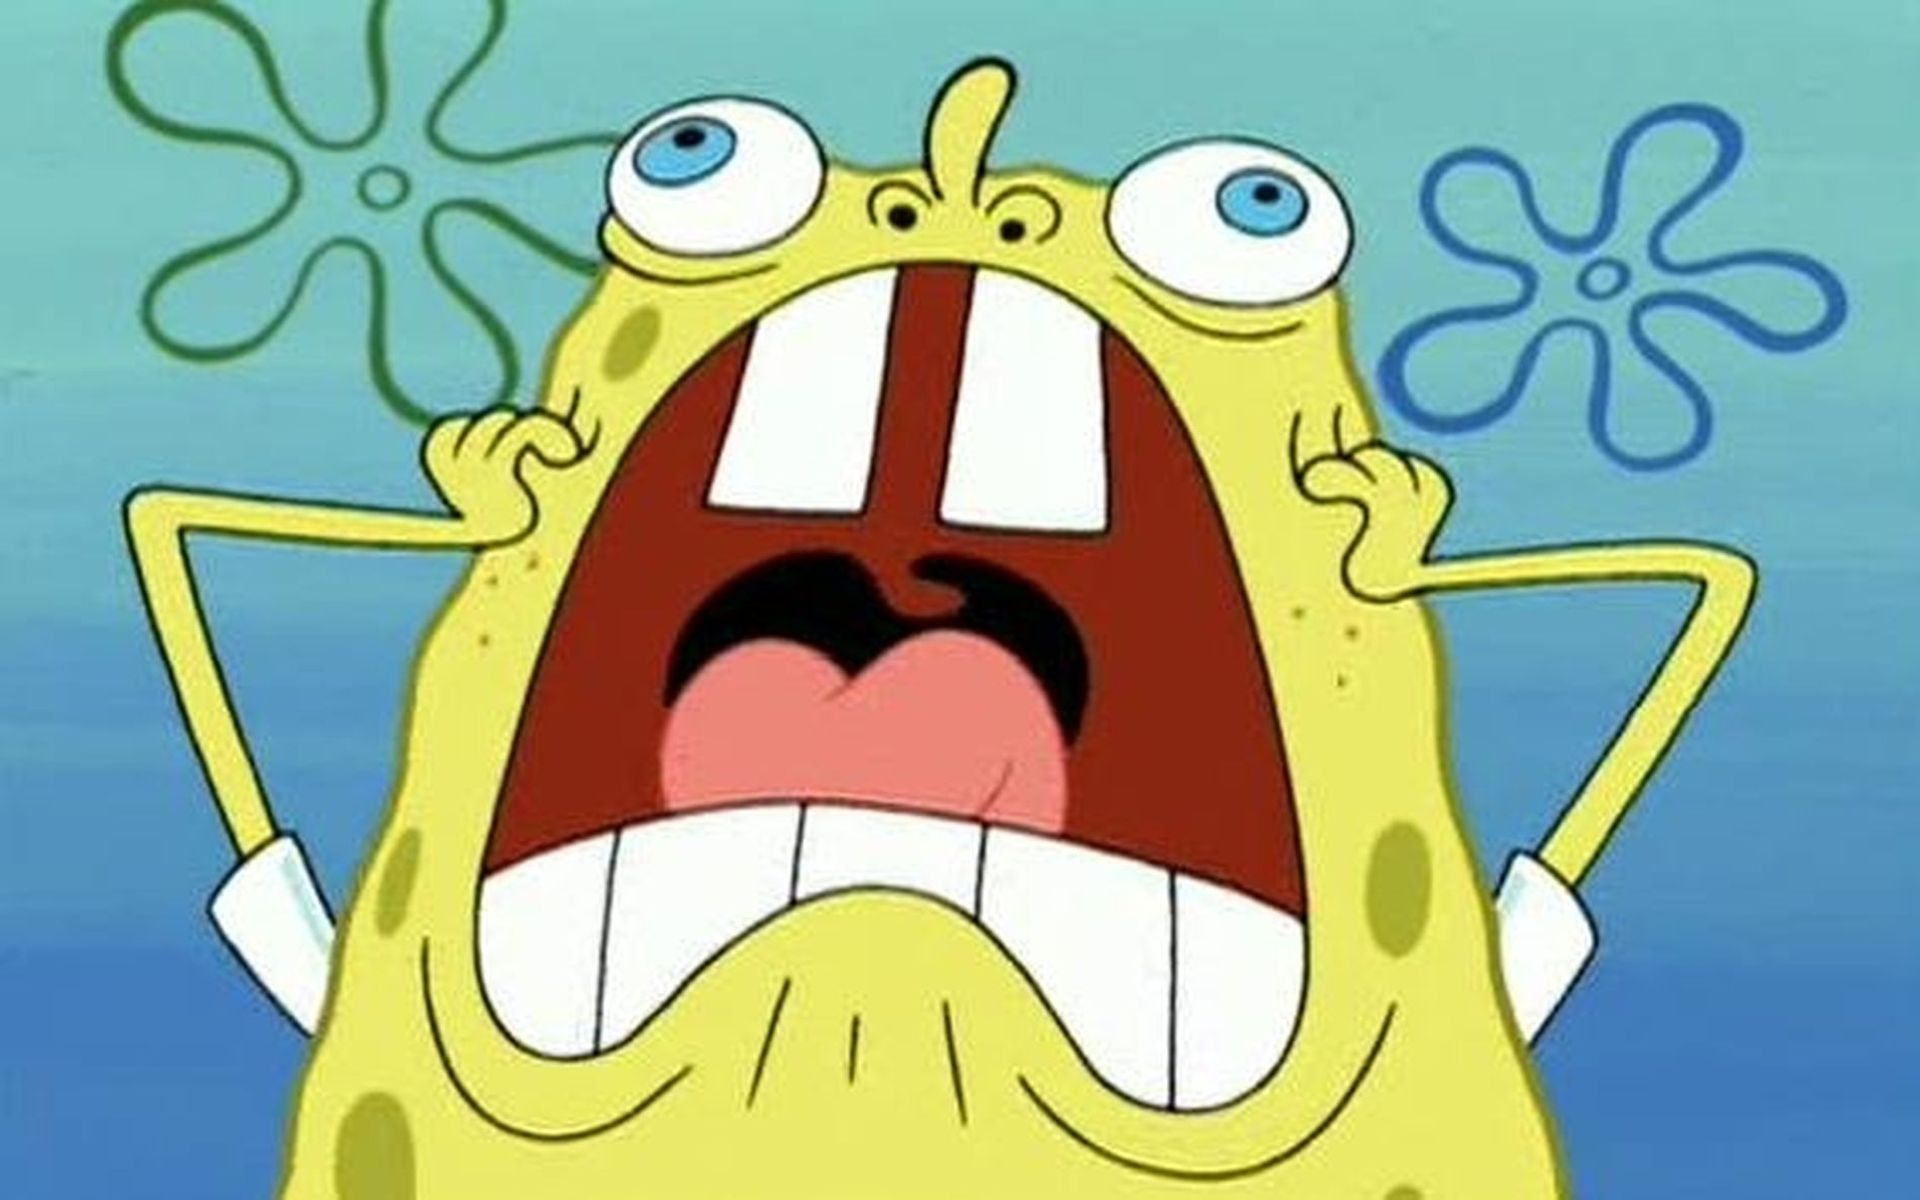 spongebob_squarepants_cry_hd_cartoon_wallpapers.jpg